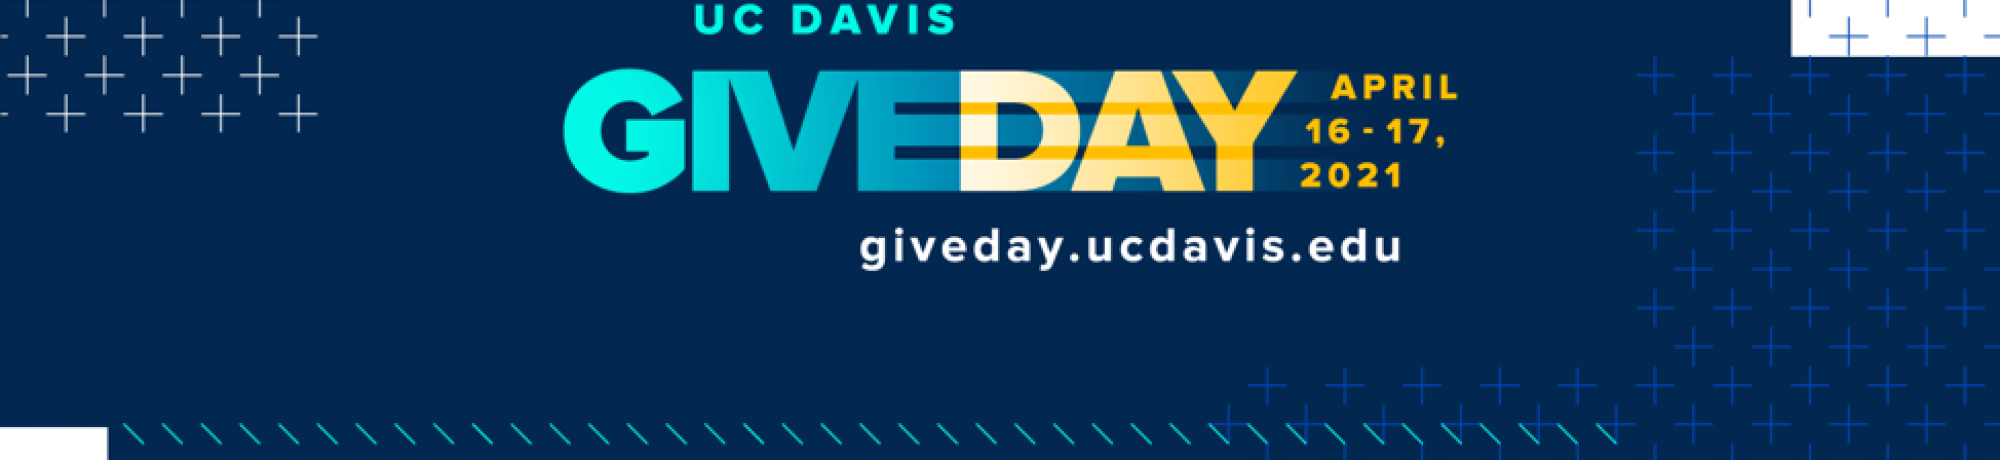 give day